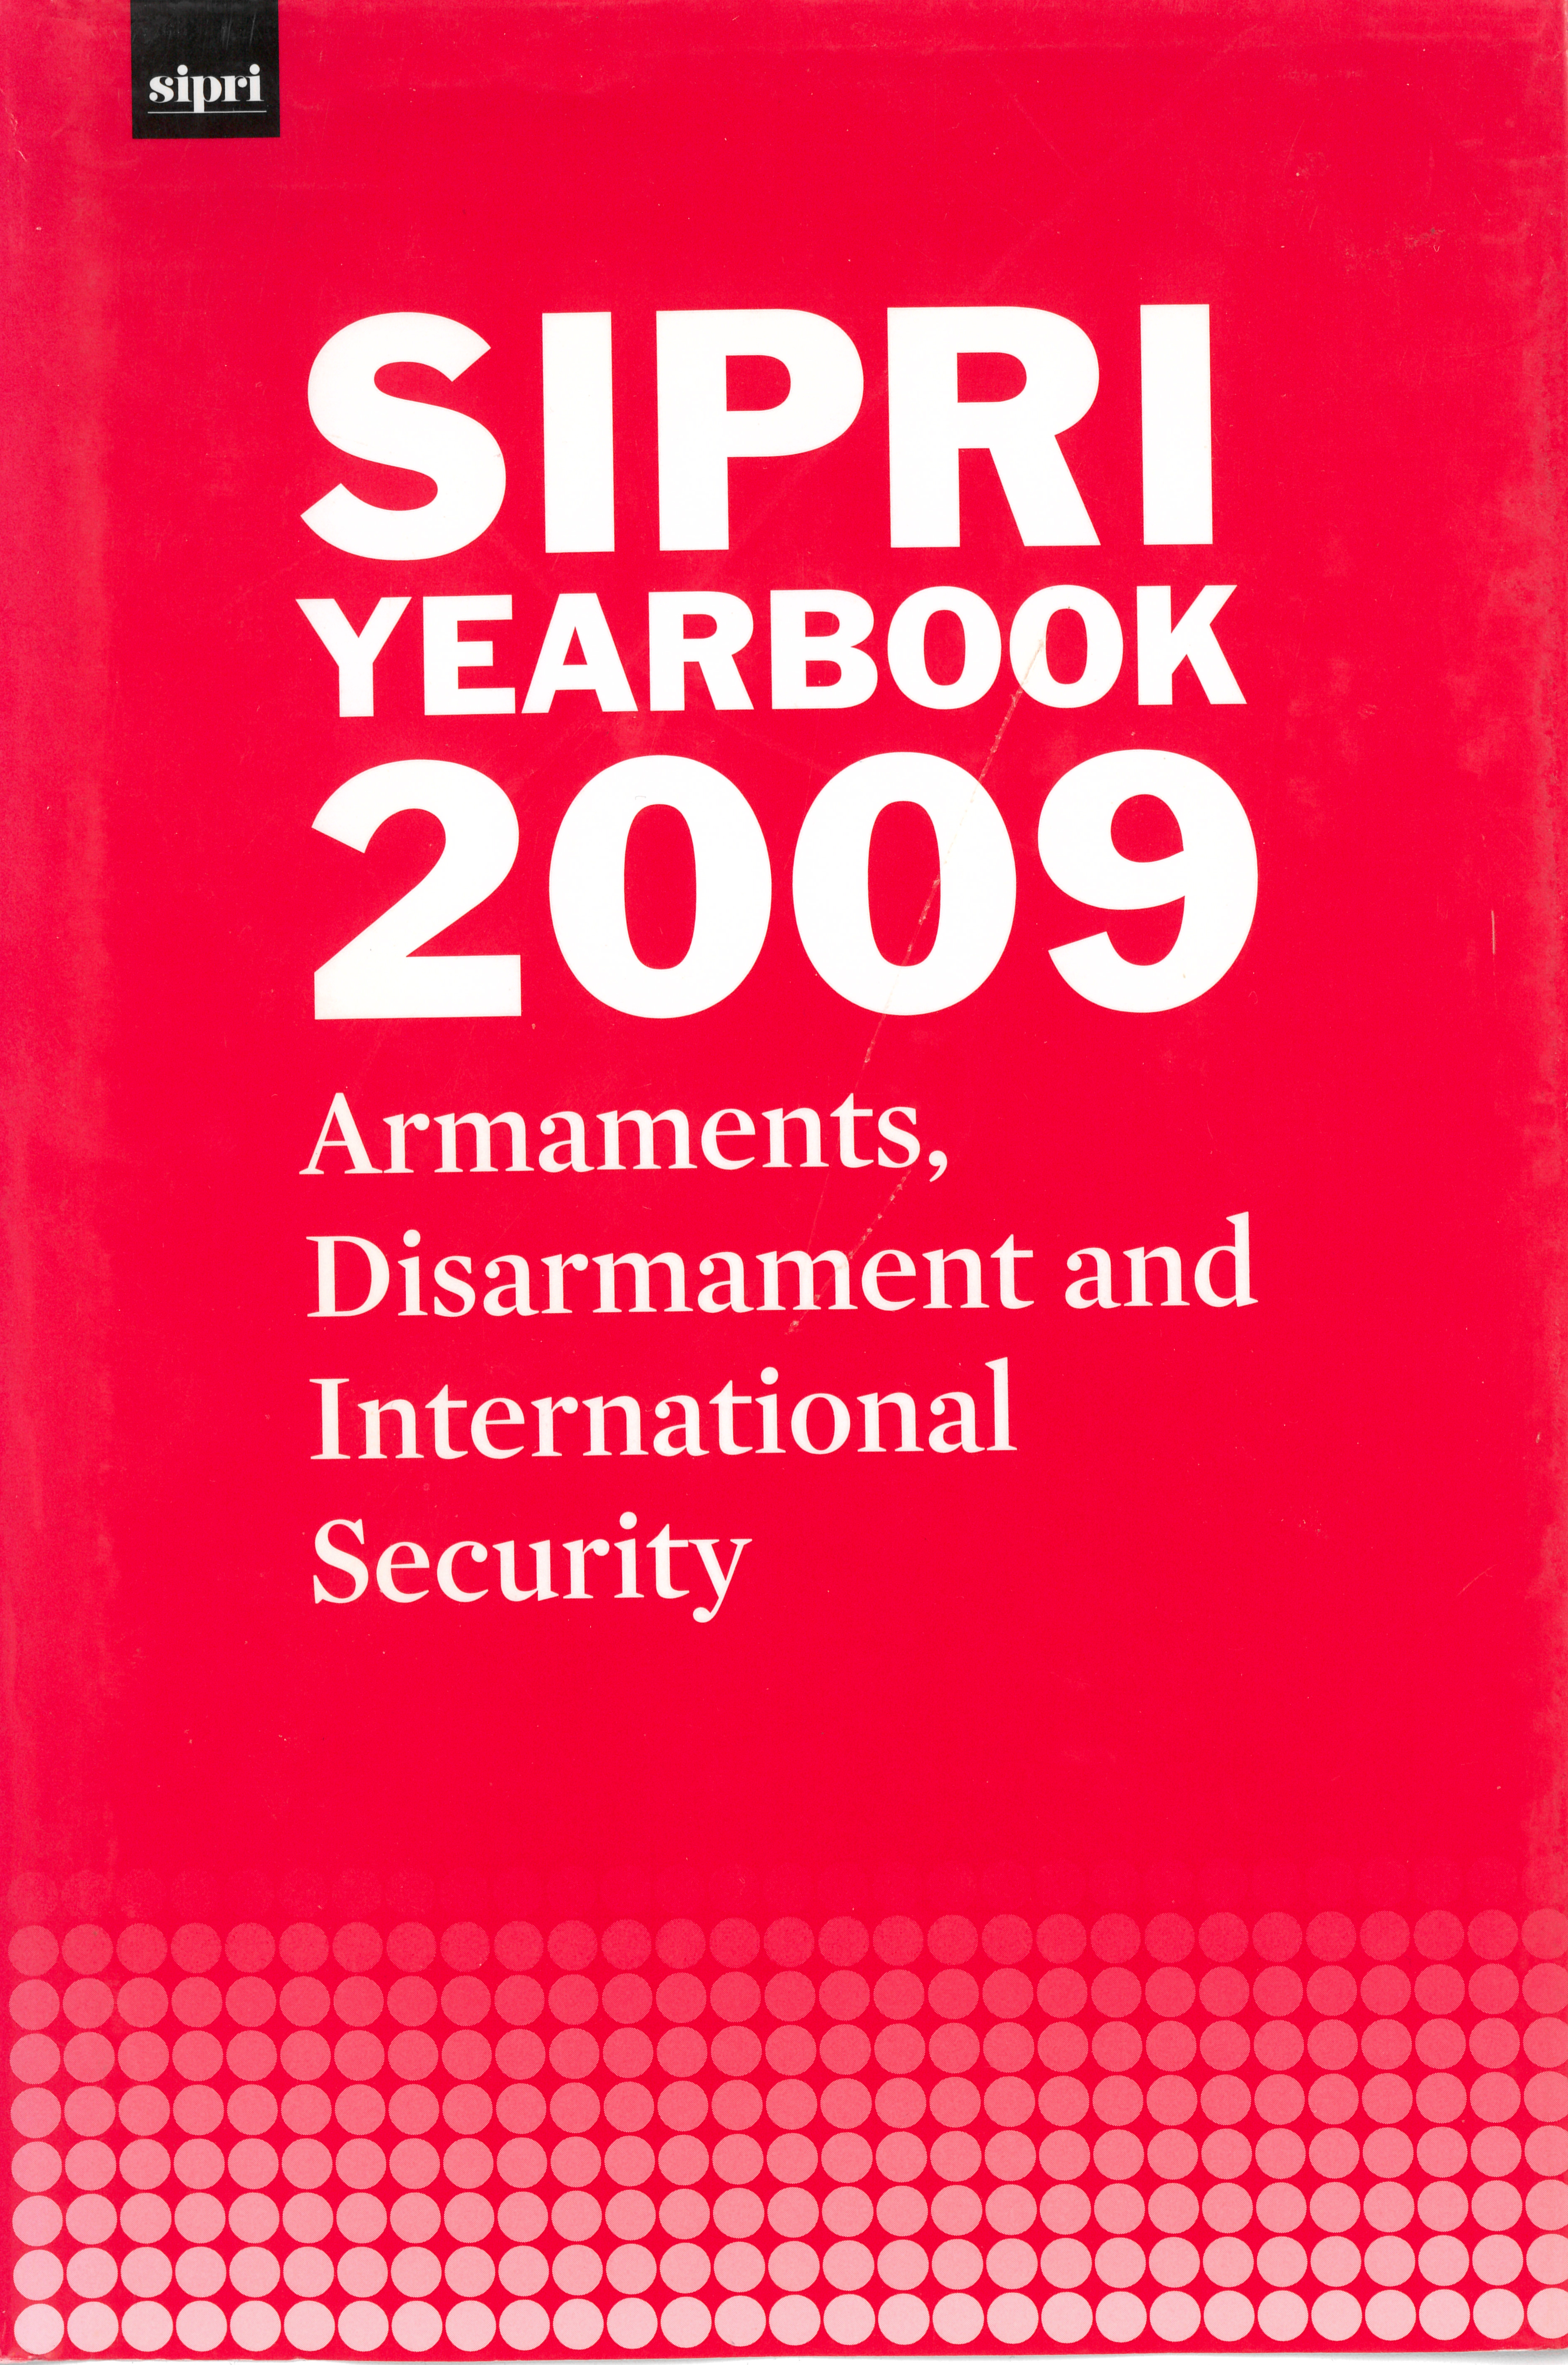 SIPRI yearbook 2009 cover